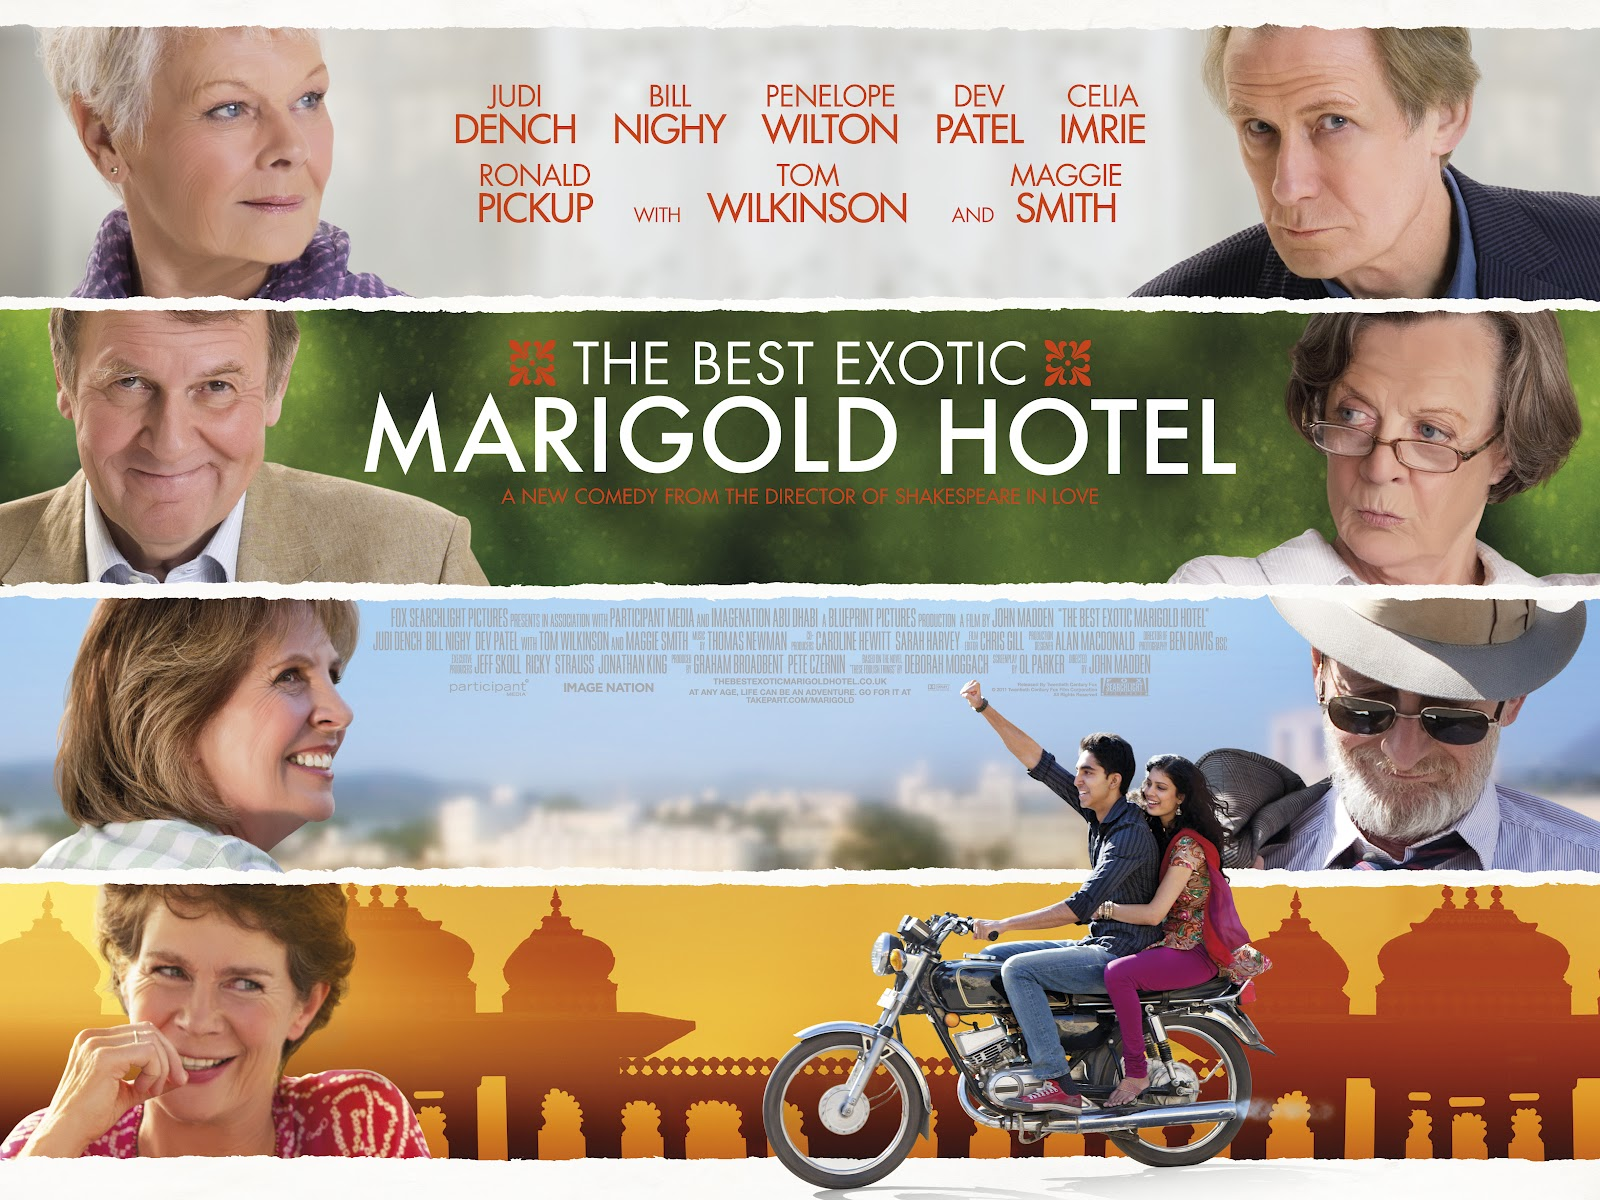 the most exotic marigold hotel essay Free essay: introduction the story of the best exotic marigold hotel (hoffman, 2012) focuses on a group of british retirees who decide to travel for their.